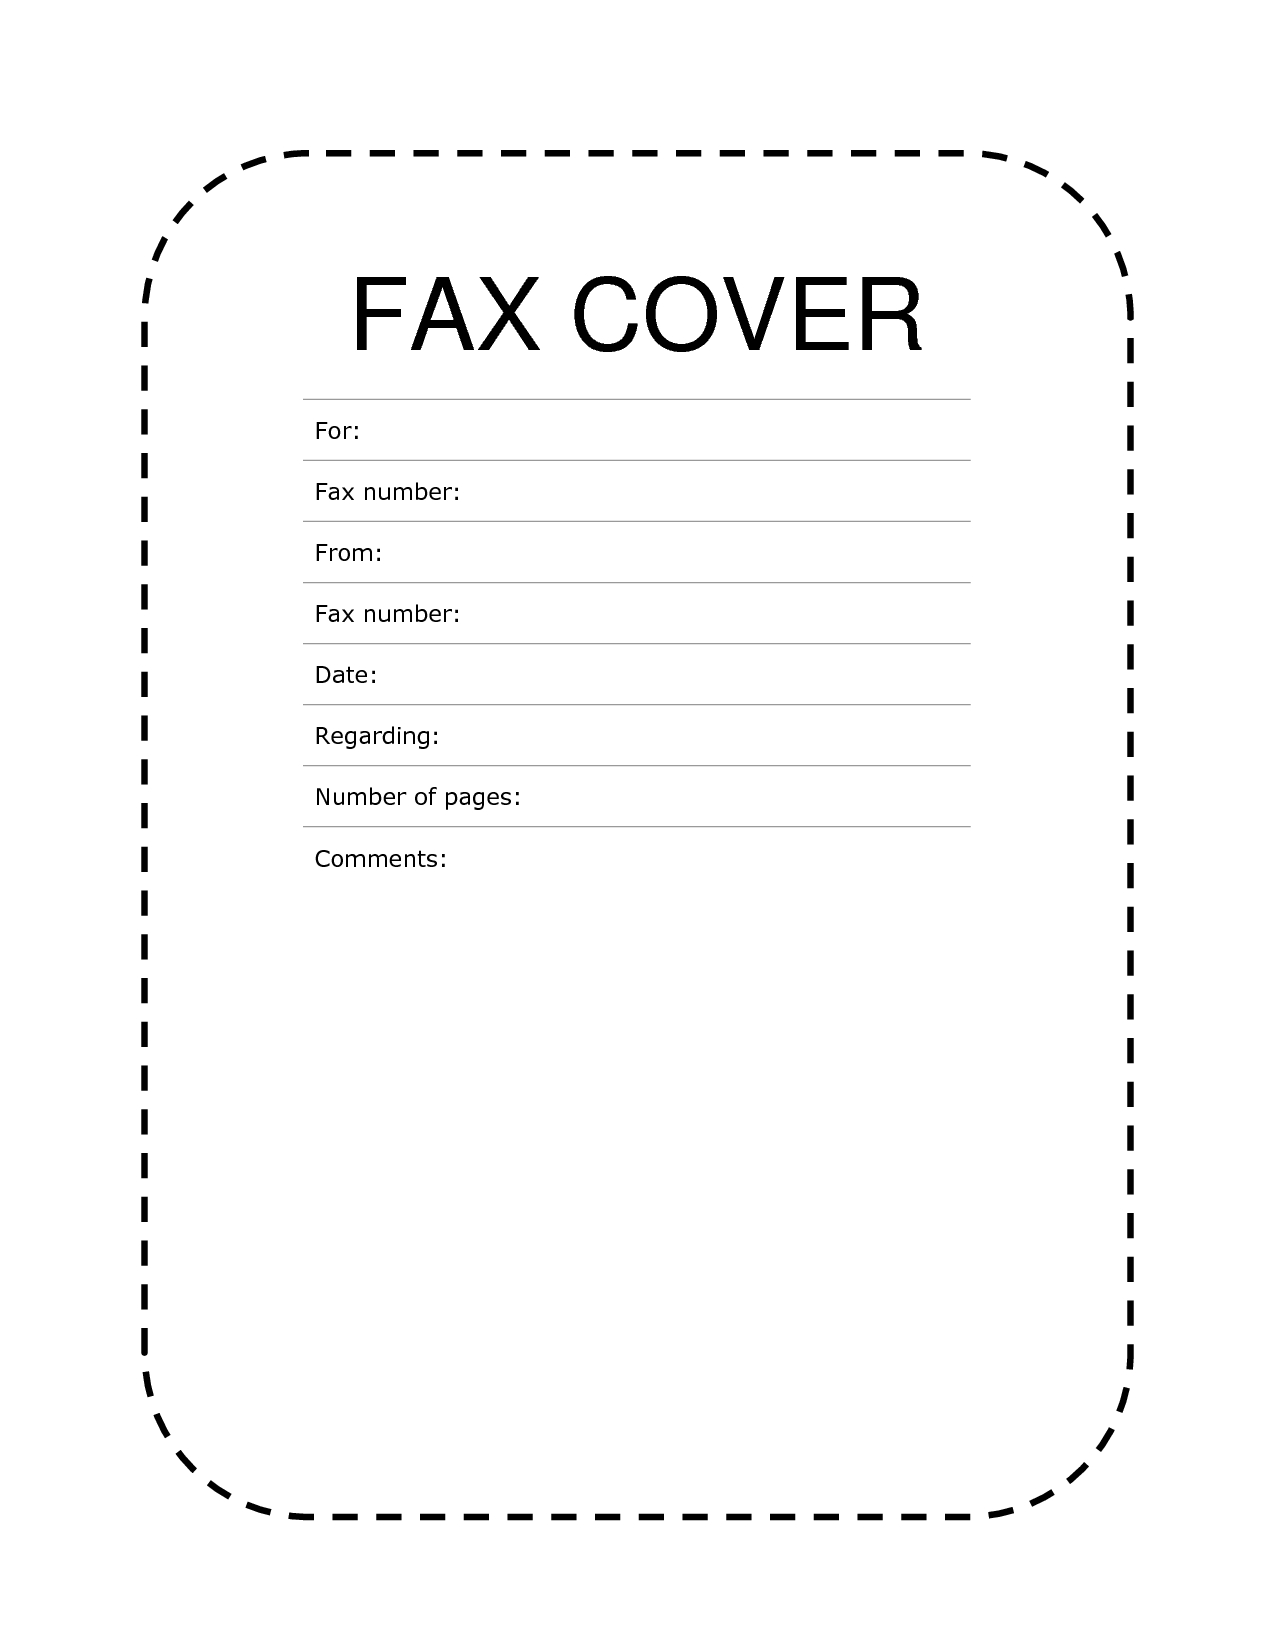 Free Fax Cover Sheet Template Format Example Pdf Printable | Fax - Free Printable Fax Cover Sheet